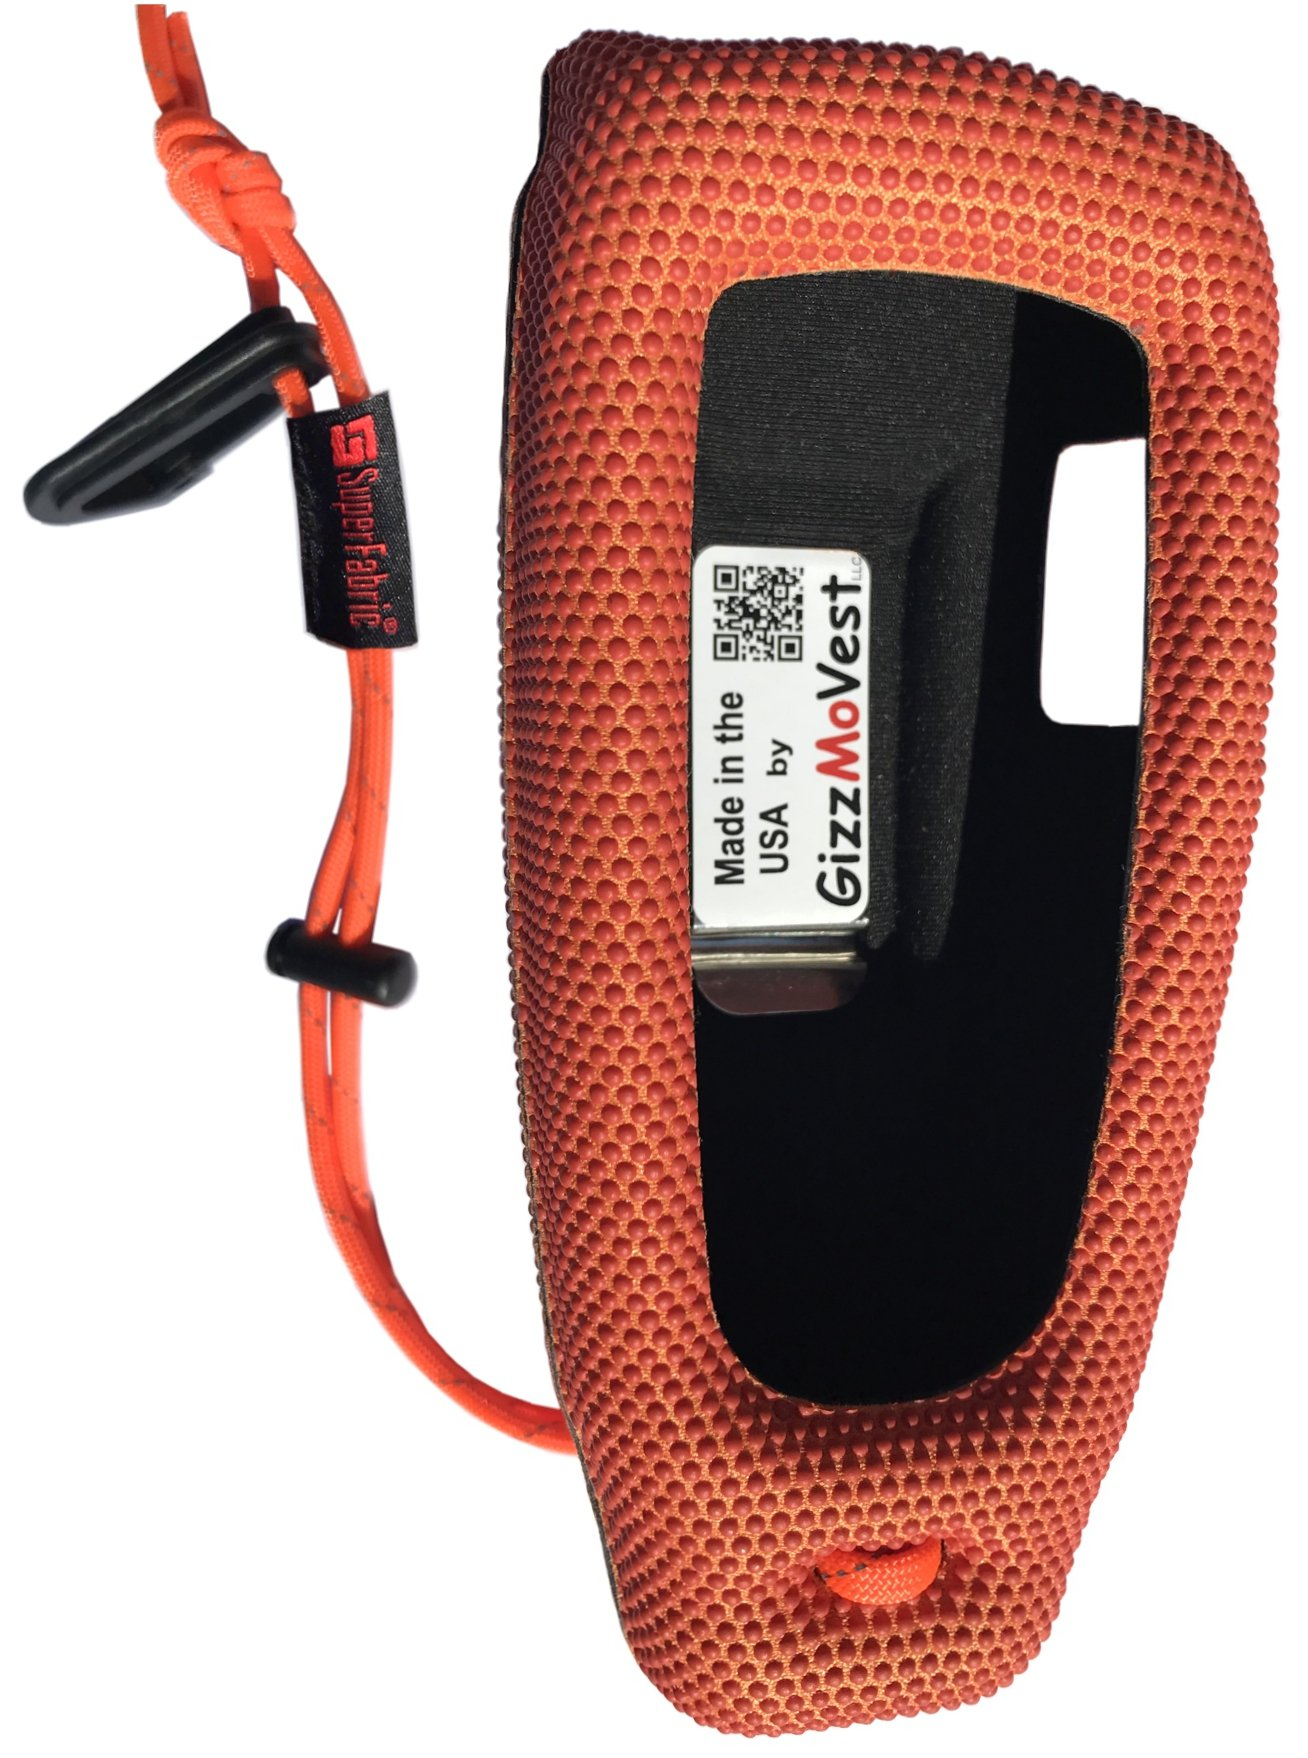 Case Cover compatible with Garmin InReach SE / Explorer. Made in the USA by GizzMoVest LLC